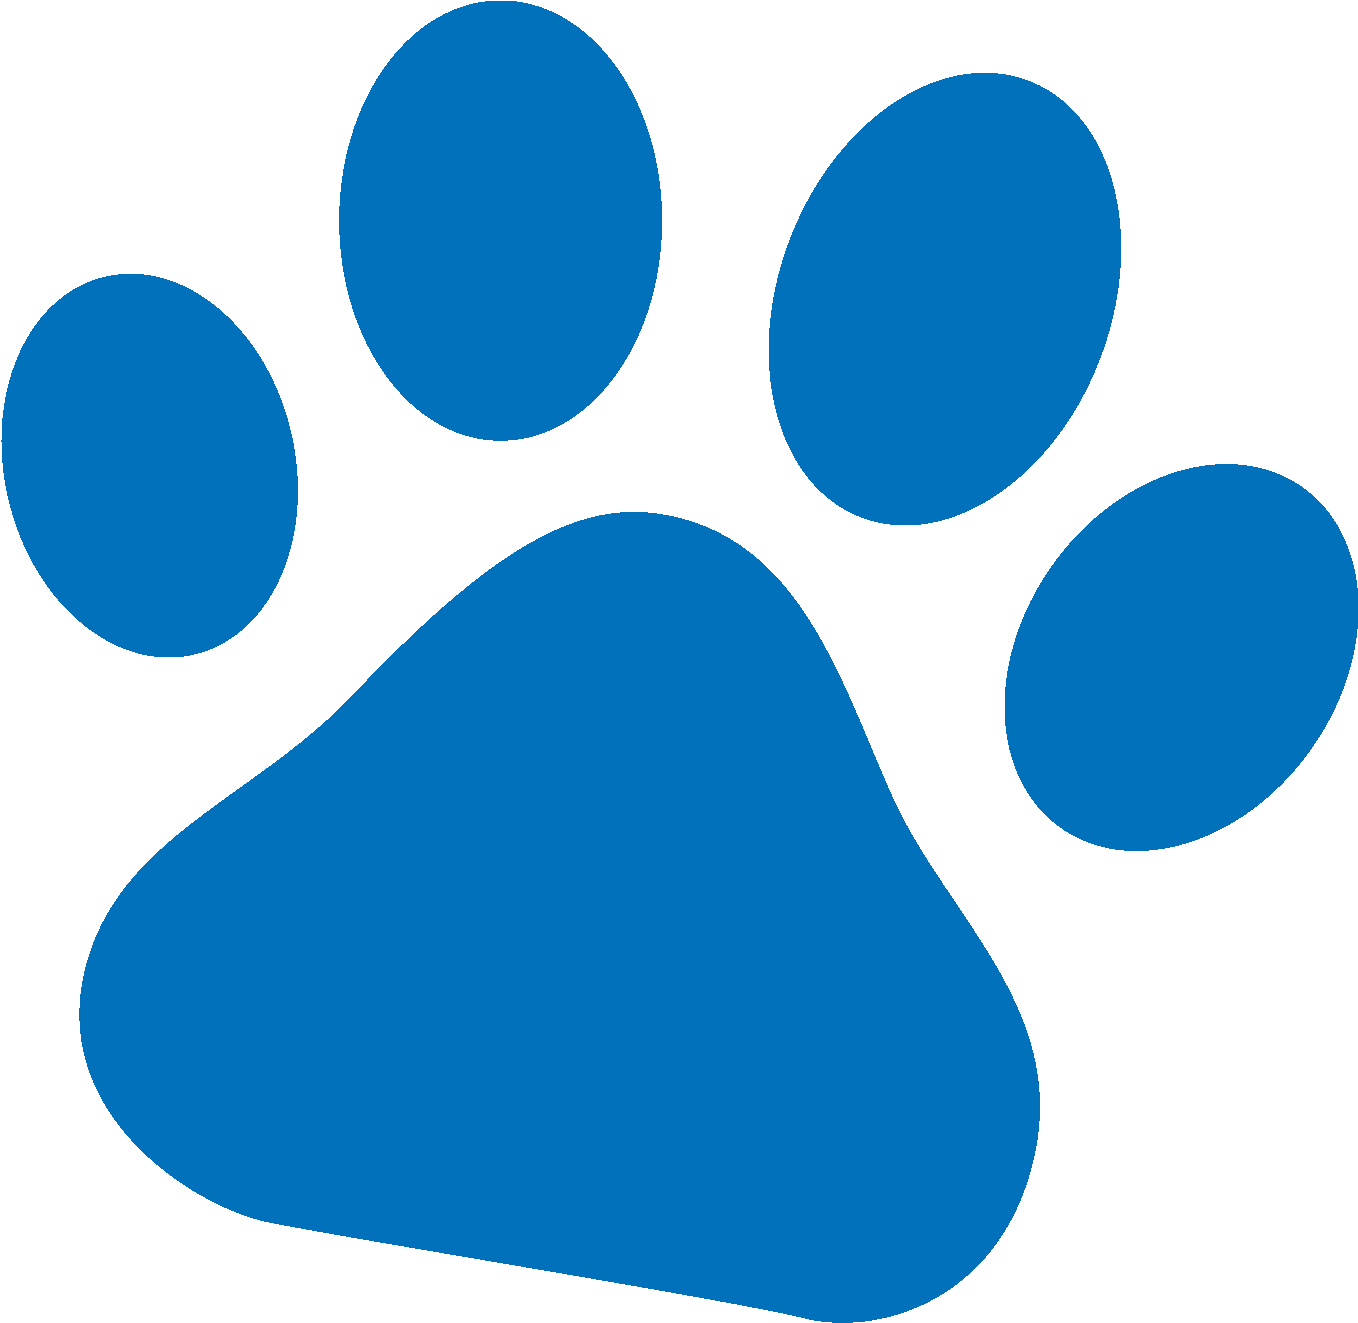 Small dog paw print clipart image stock Pals Paw Blue - Cat Paw Print Small Clipart - Full Size Clipart ... image stock